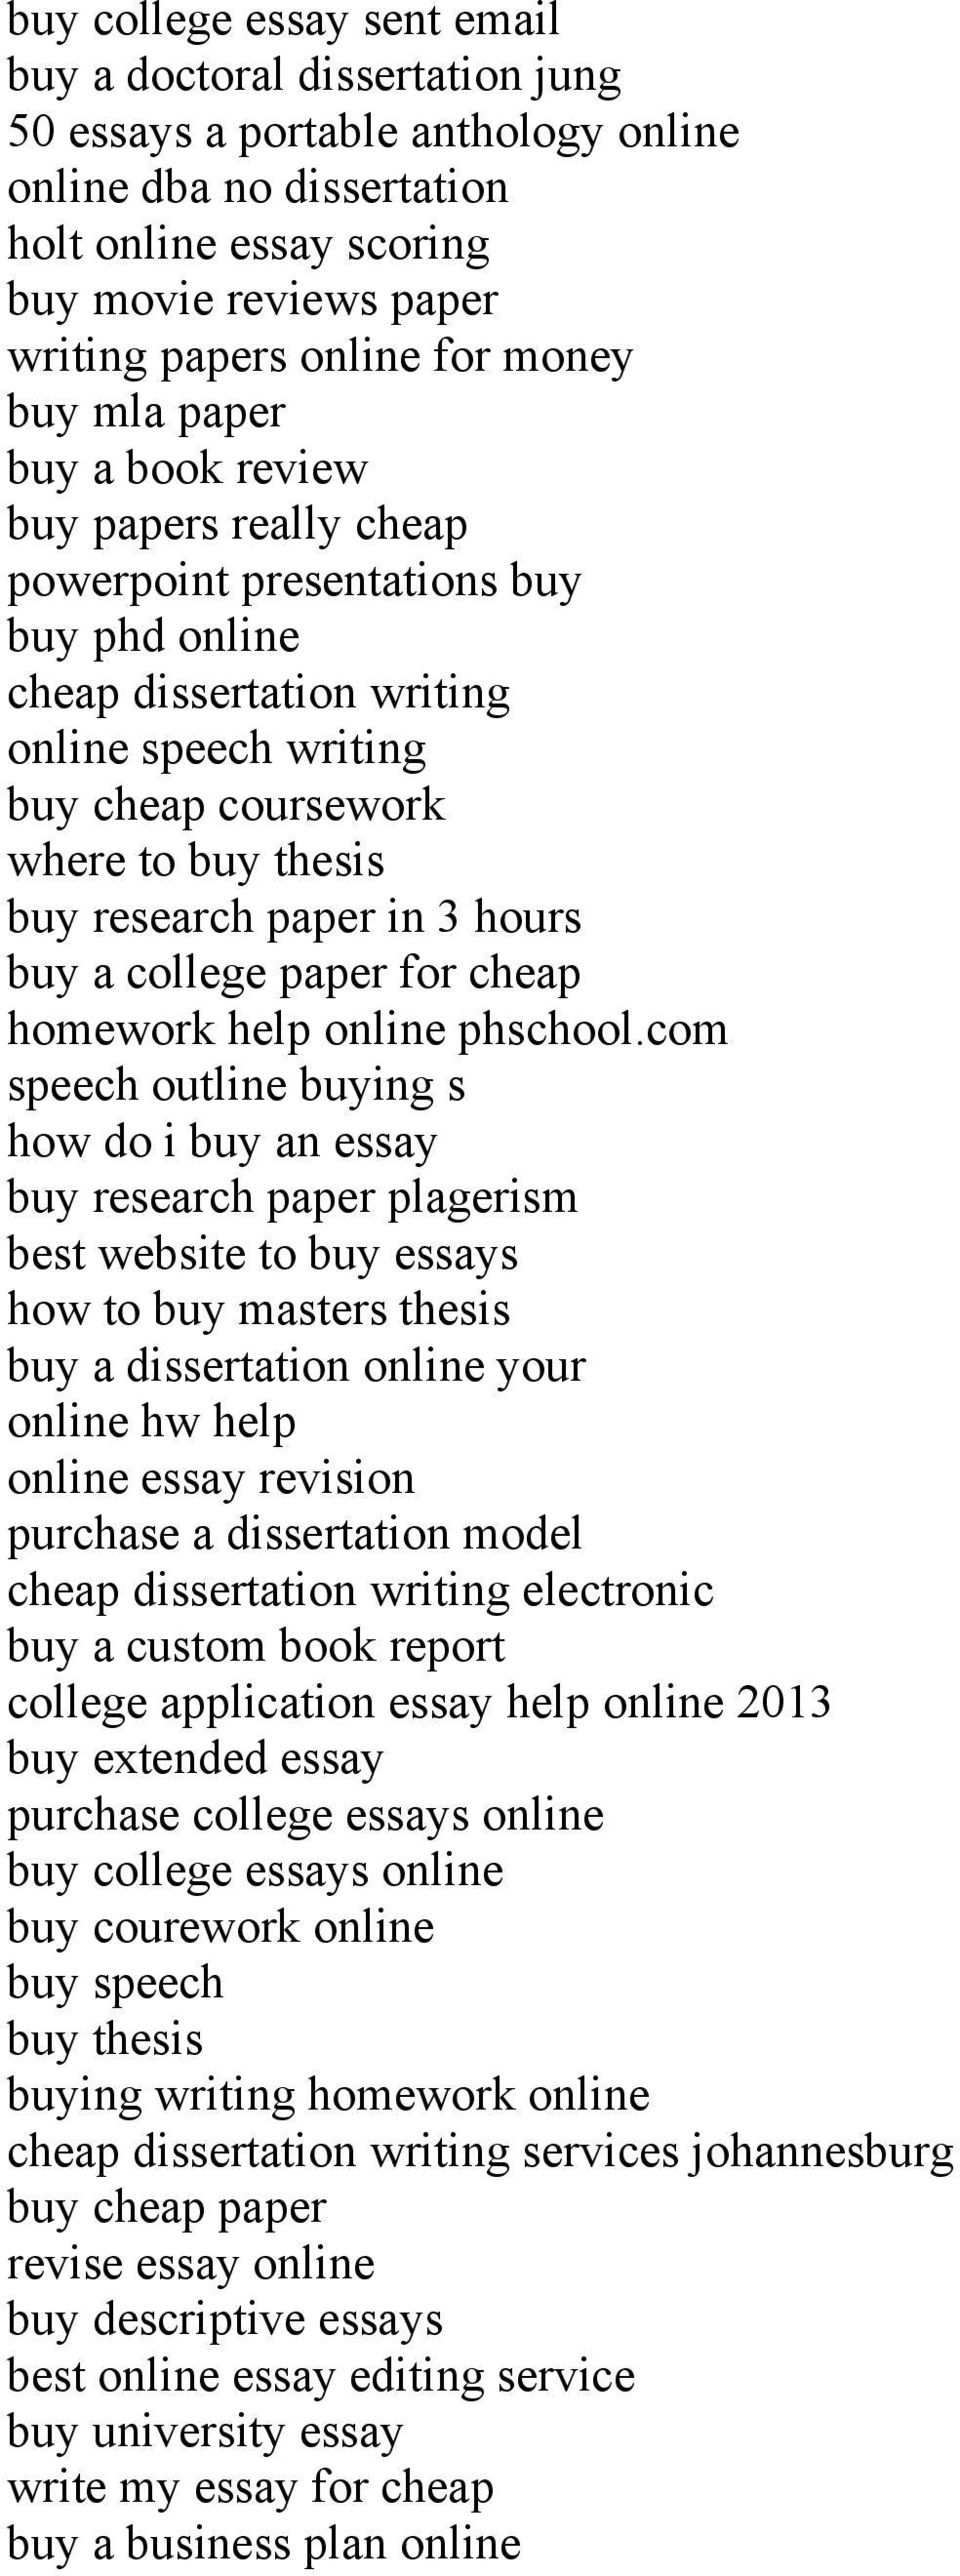 Synthesis Essay Topics Buy Research Paper In  Hours Buy A College Paper For Cheap Homework Help  Online Phschool How Do I Write A Thesis Statement For An Essay also Best English Essay Topics Online Coursework Help  Pdf Science Essay Topics